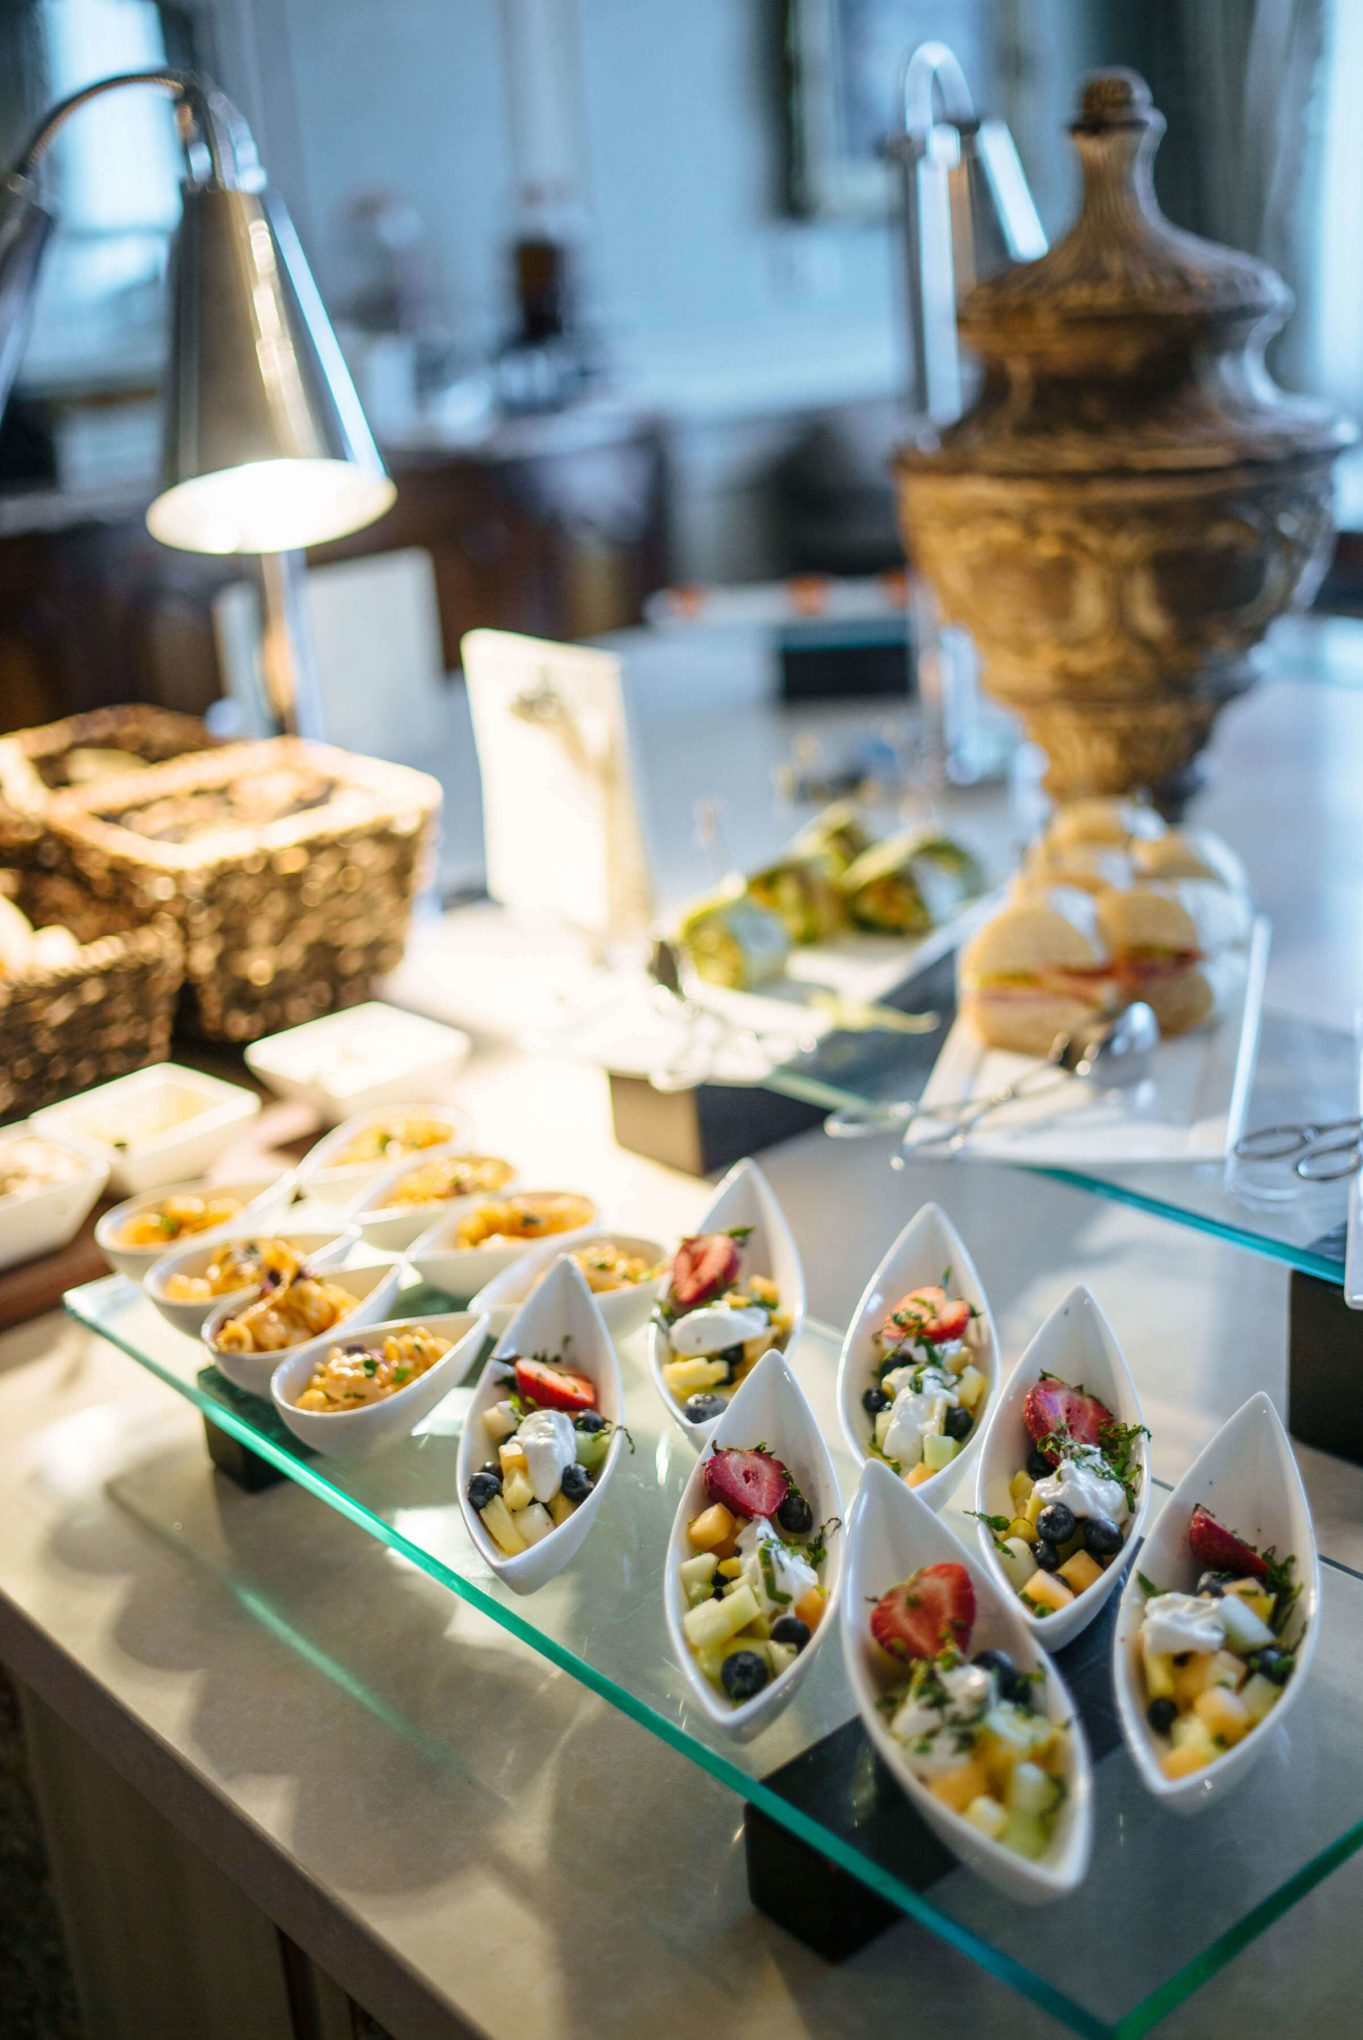 The club level food offerings at the best hotel in New Orleans, The Ritz-Carlton New Orleans, The Taste SF